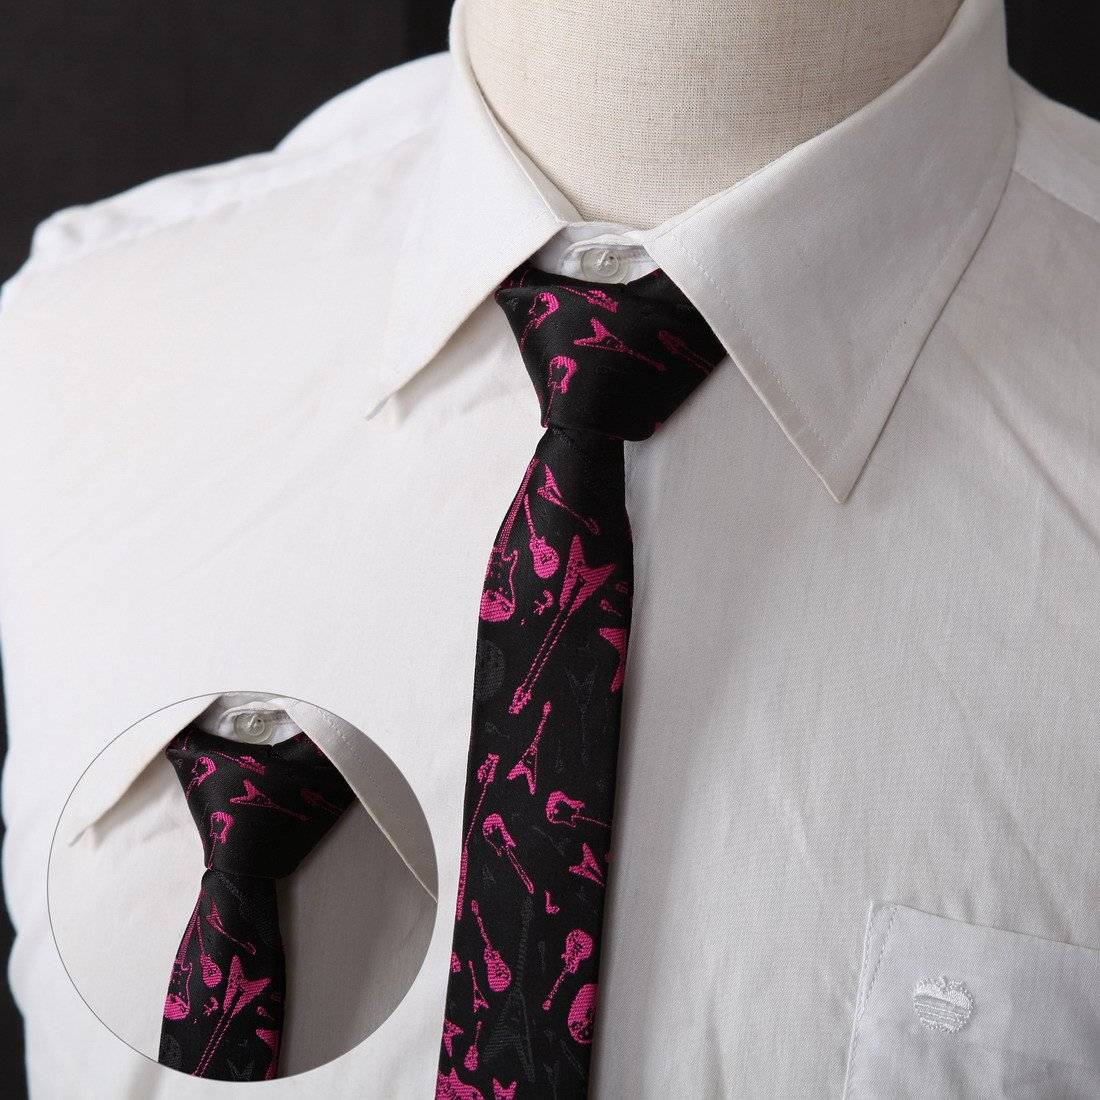 DANF0039 Series Colors 5cm-width Polyester Slim Ties Creative Fashion Skinny Ties - 5 Styles Available Inspire For Business By Dan Smith by Dan Smith (Image #6)